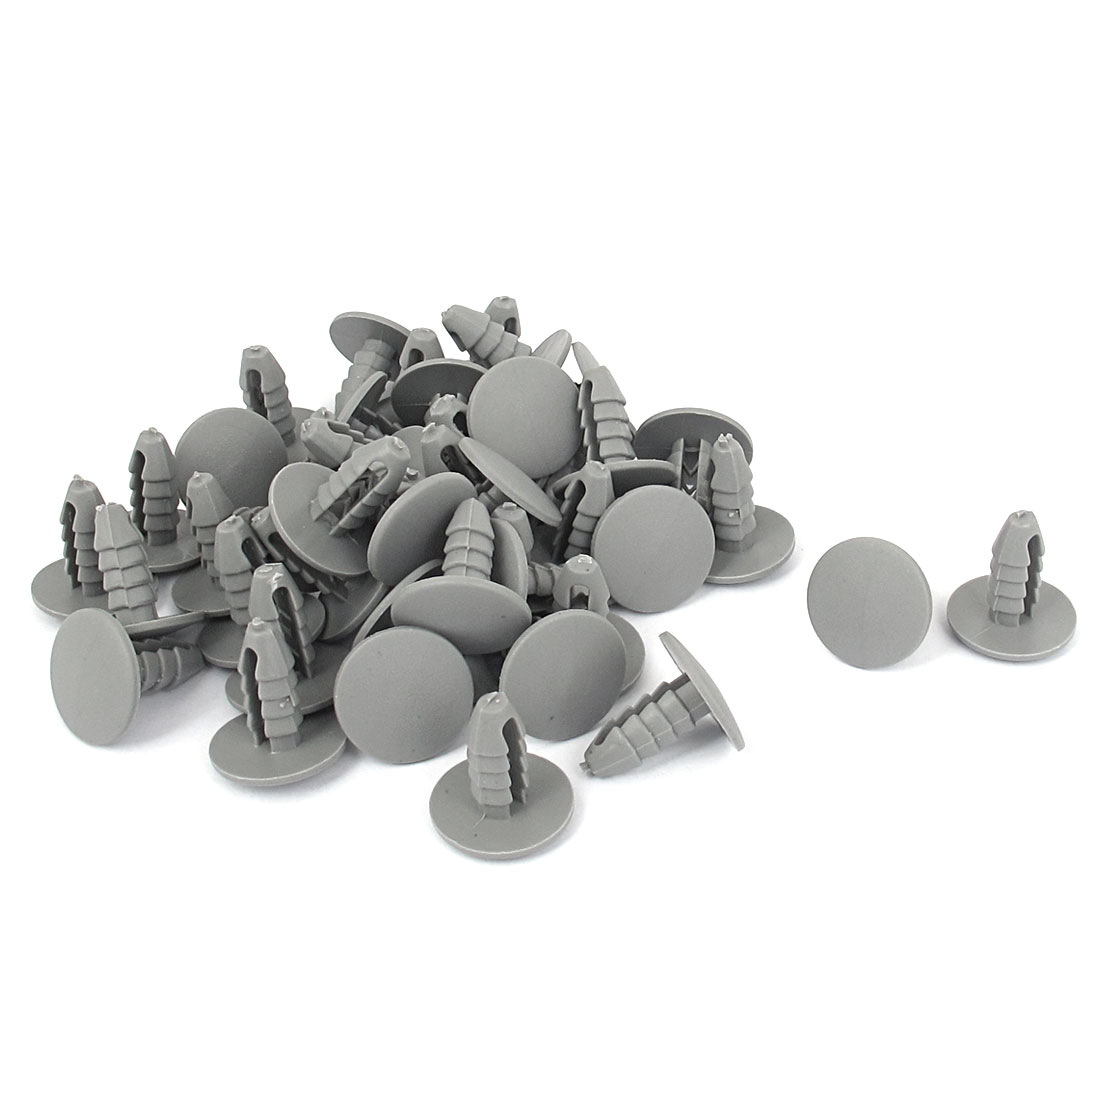 50pcs 8mm Hole Gray Plastic Car Door Fender Bumper Push Rivets Fasteners Retainer Clip